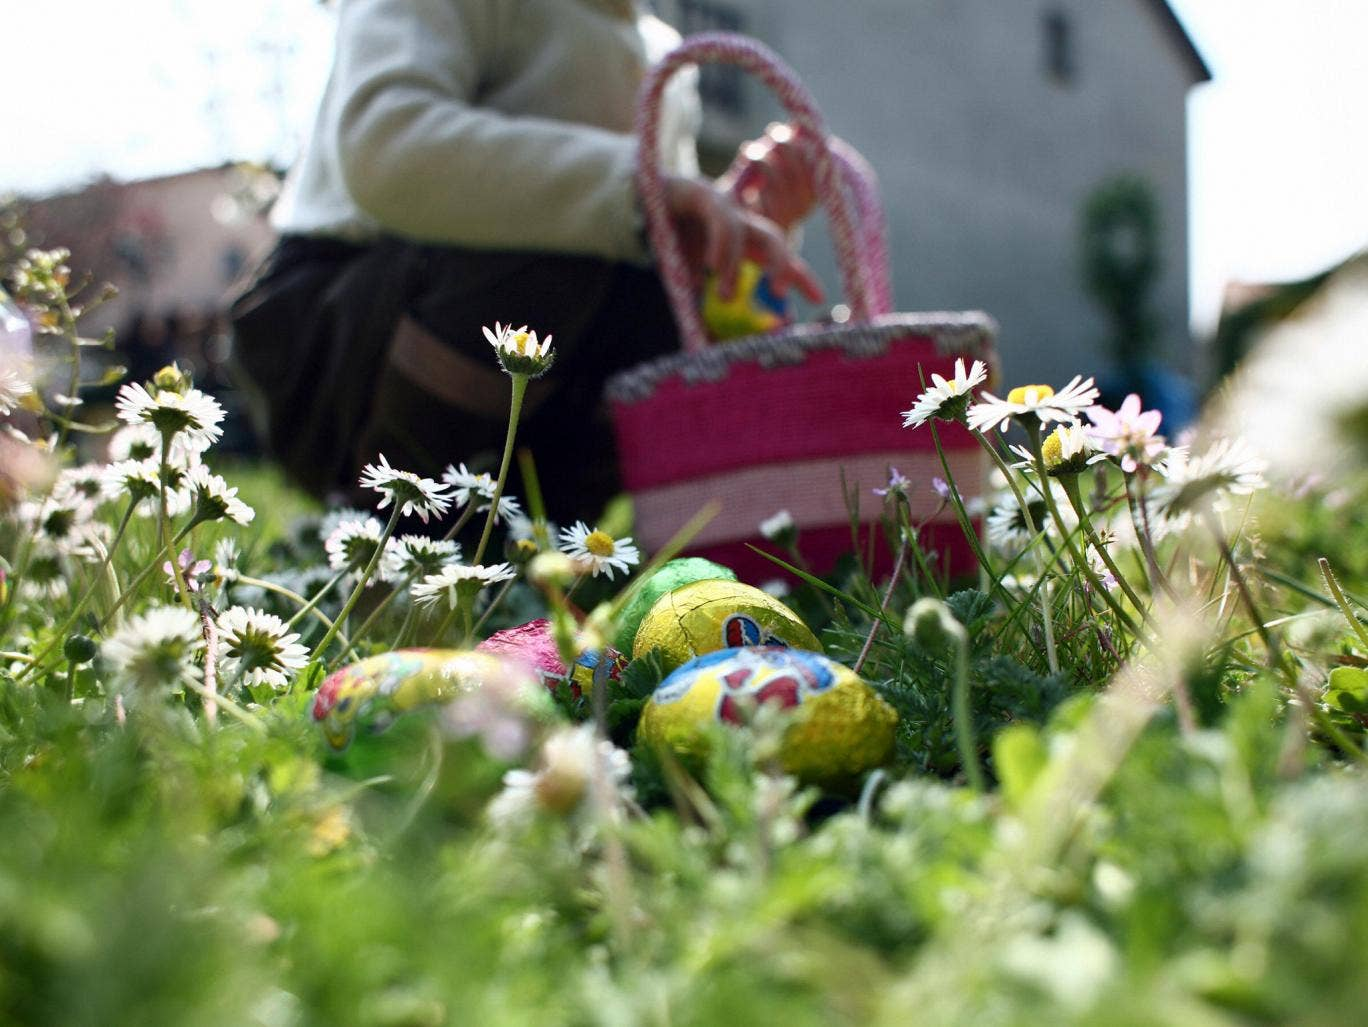 Easter 2016 egg hunt descends into madness as 39 locust 39 parents rush fields and trample children - Cacher les oeufs de paques ...